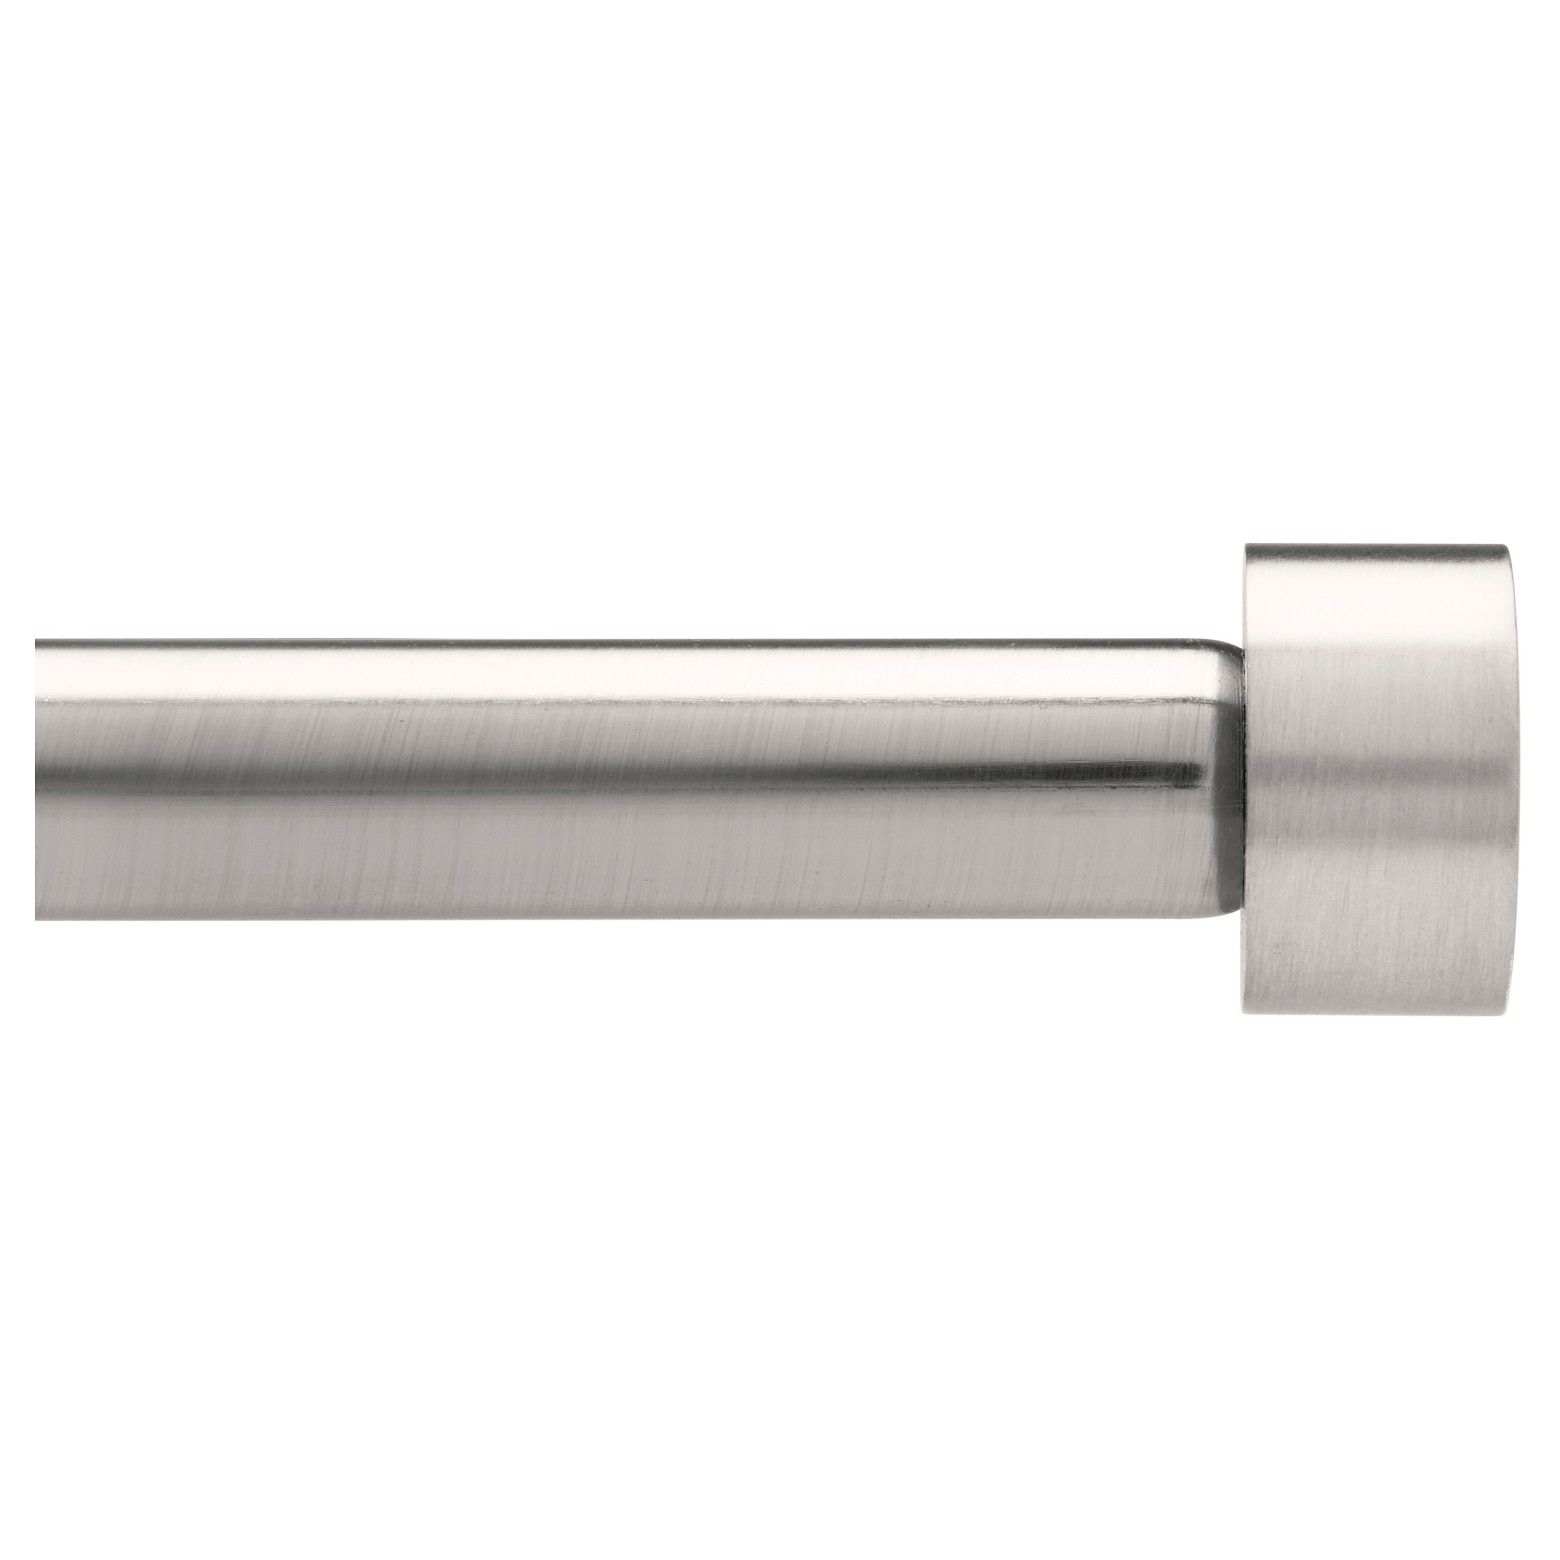 The Loft By Umbra Dauntless Curtain Rod Set Includes A 1 Quot